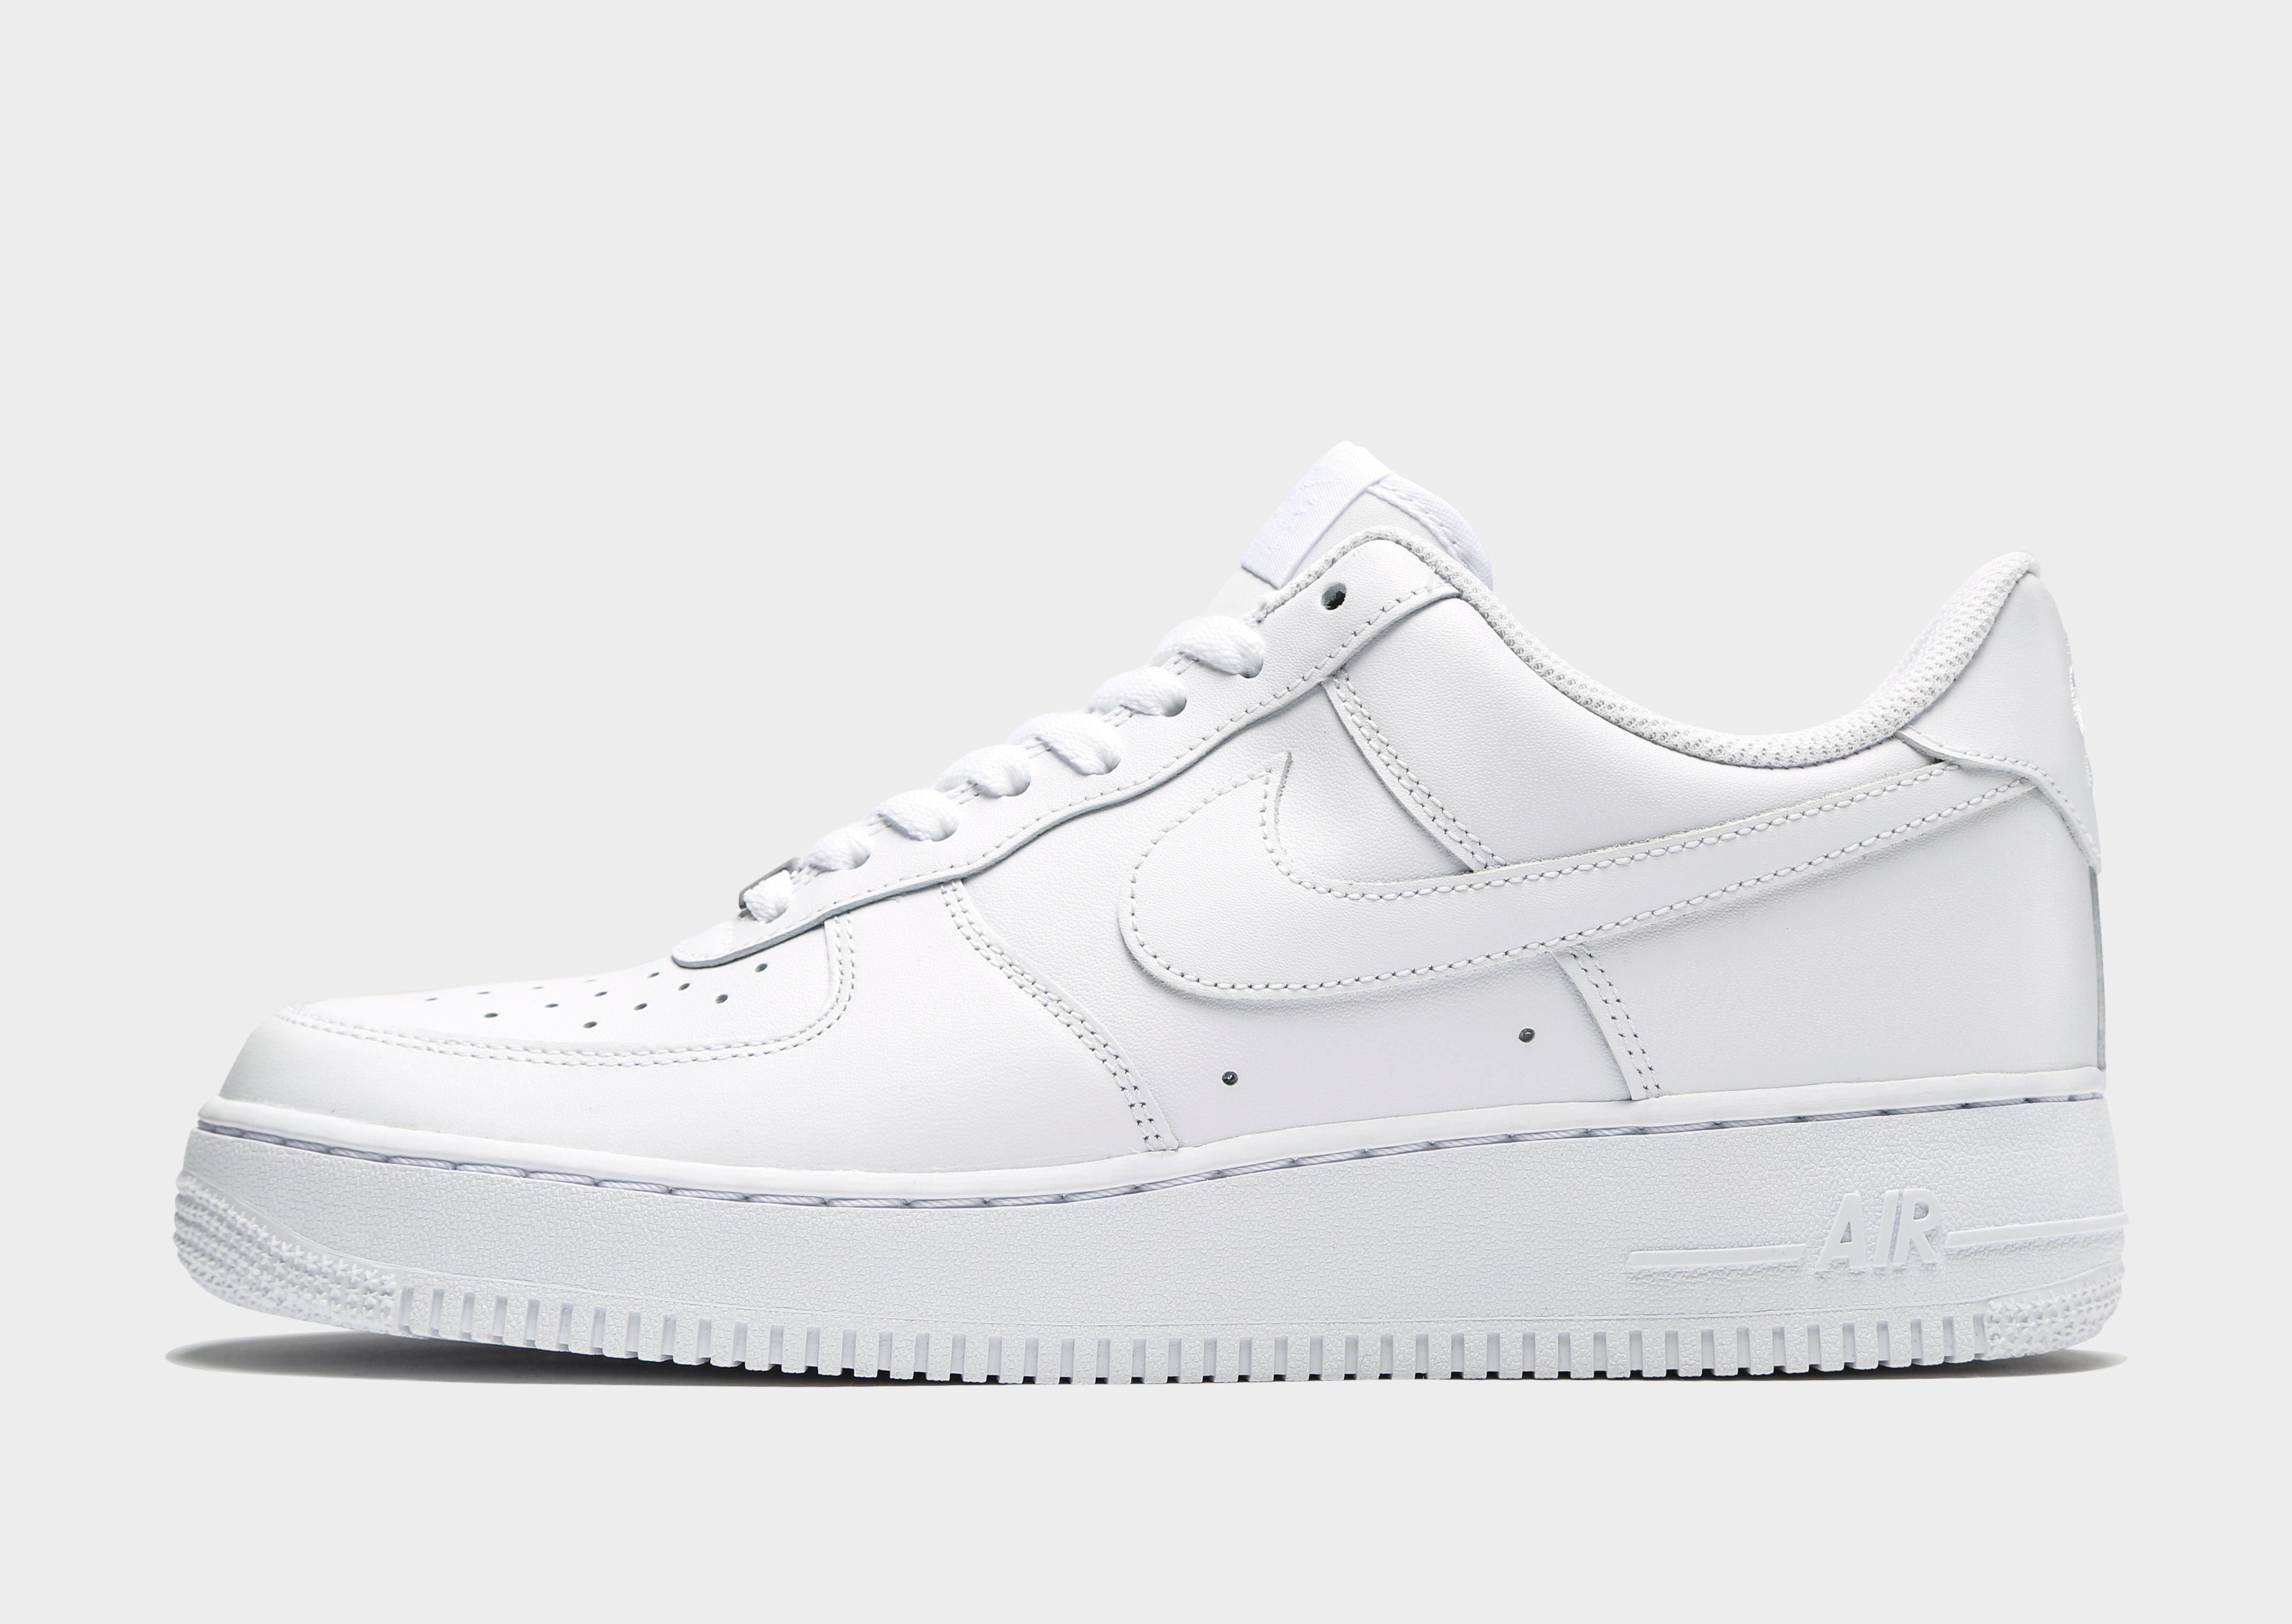 best service 11f8a 0ea2f ... denmark nike air force 1 low shop online for nike air force 1 low with  jd